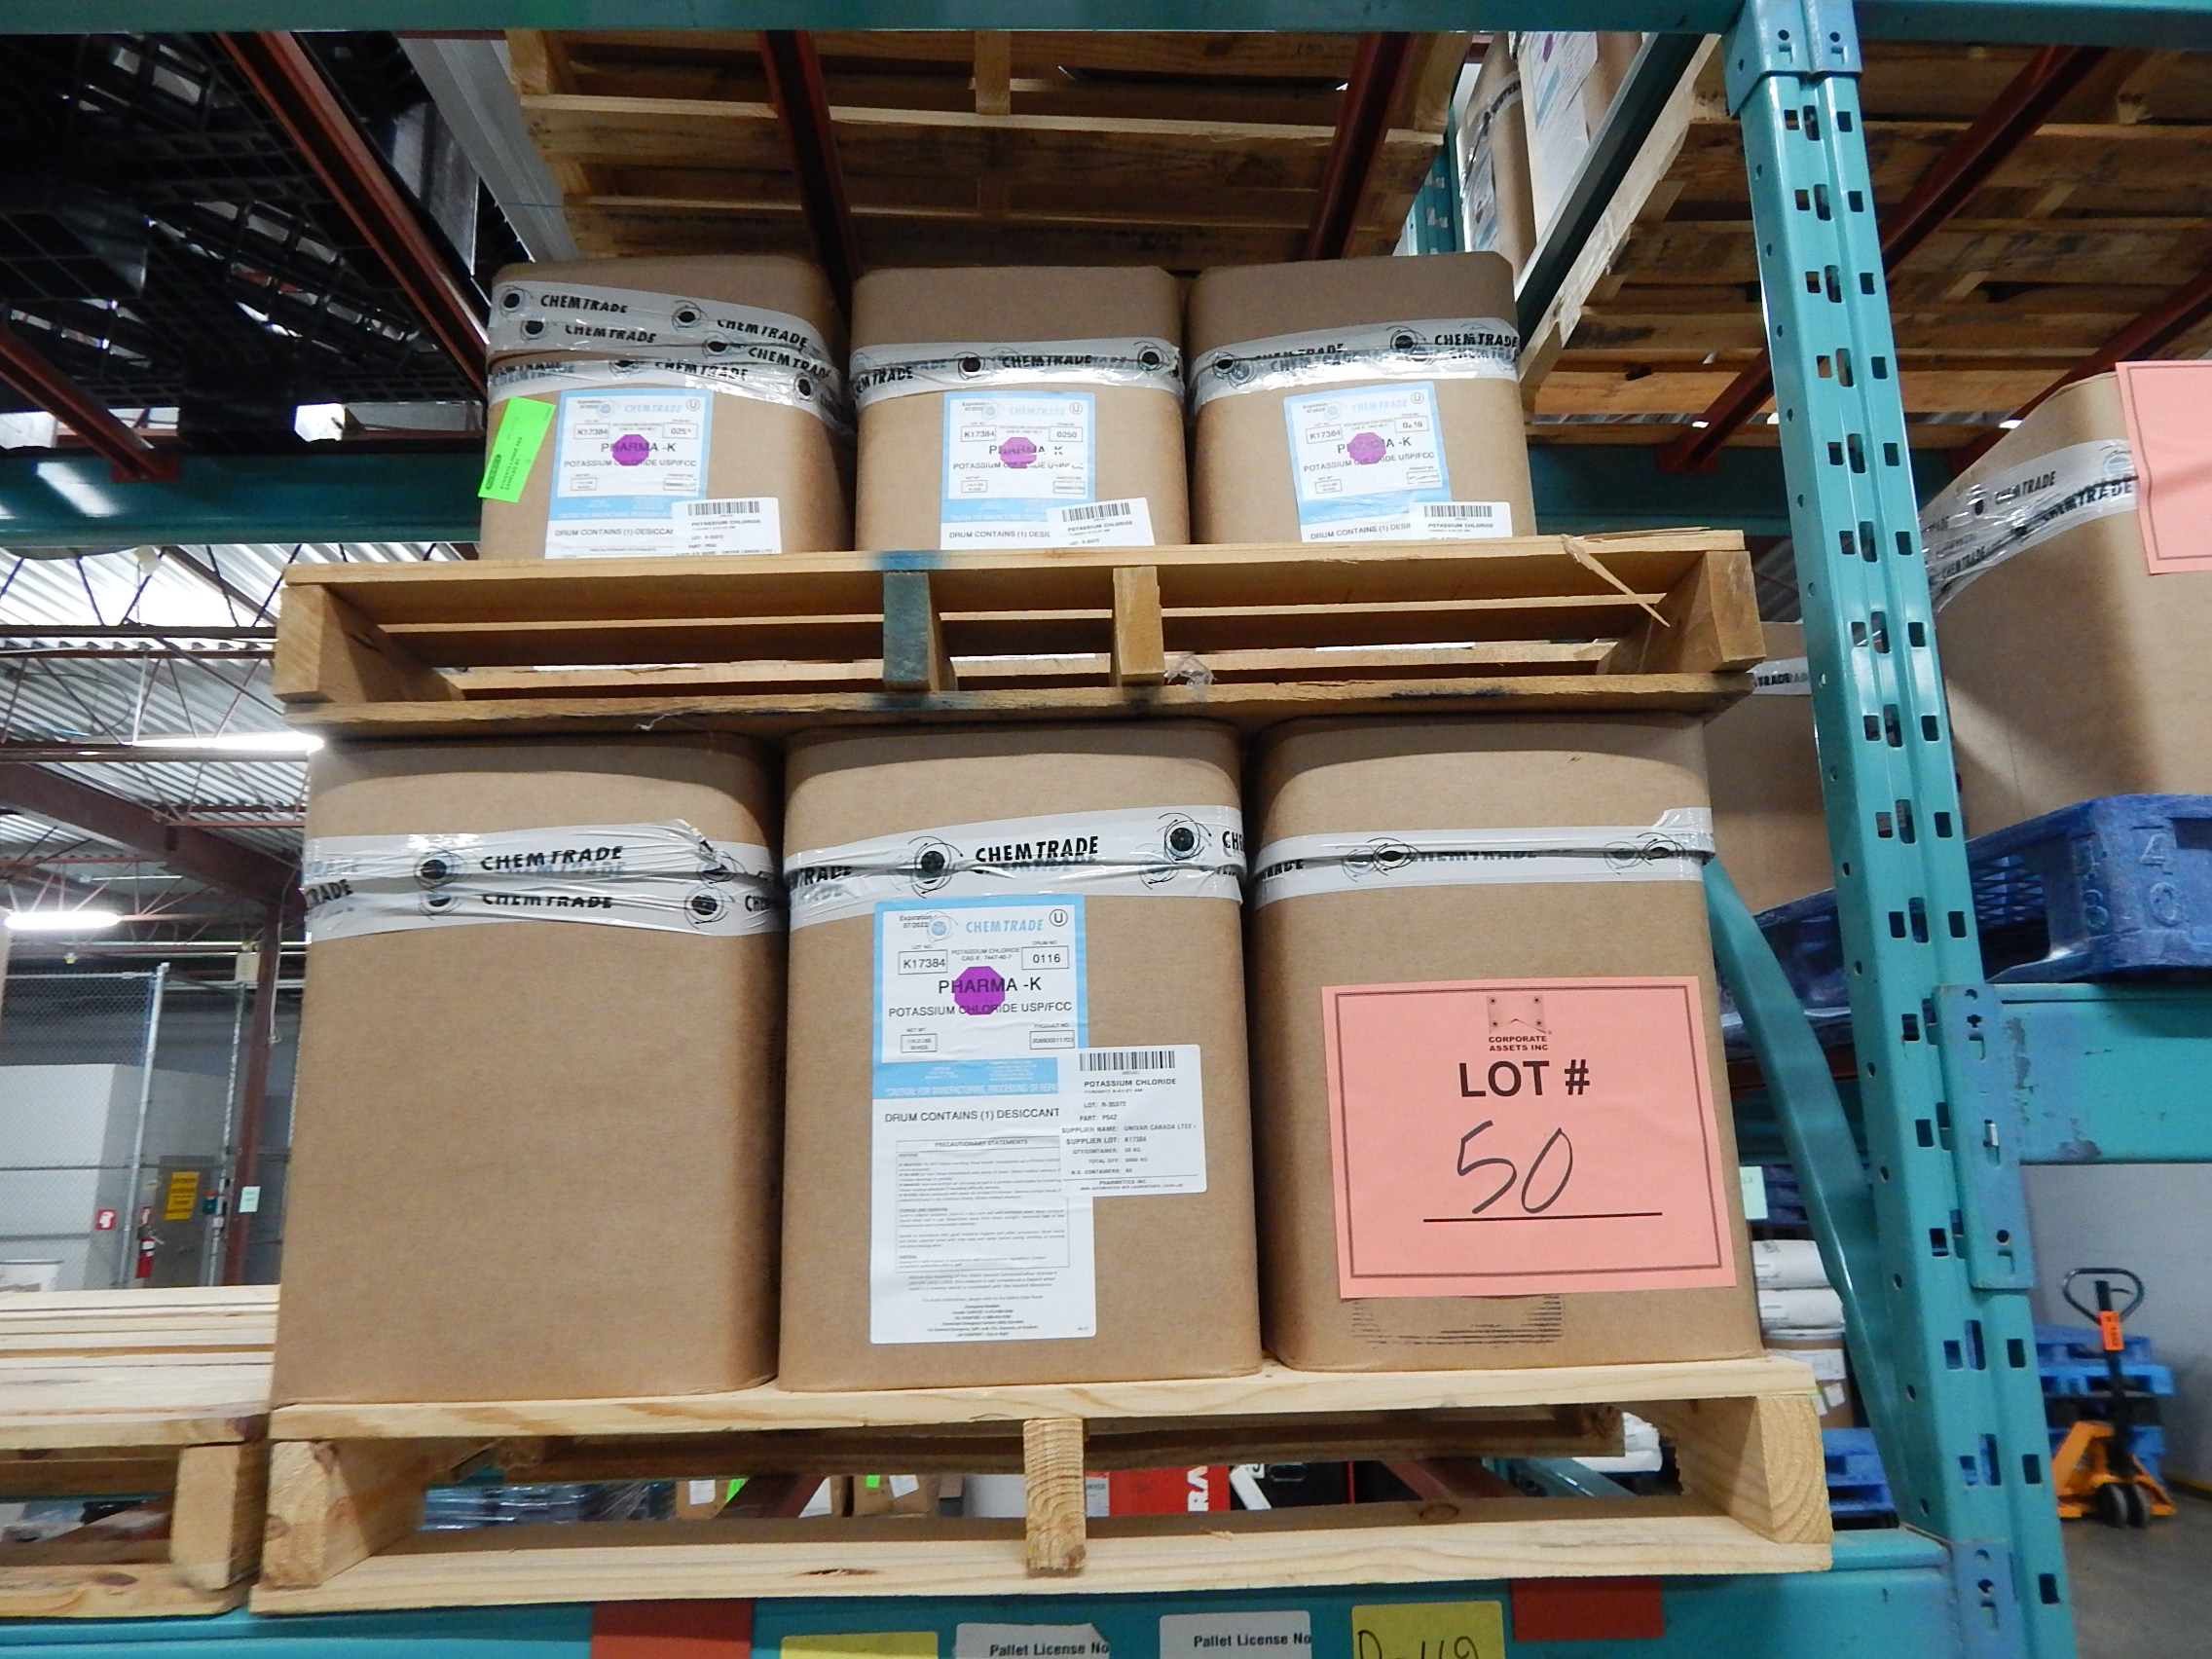 Lot 50 - LOT/ SKID WITH CONTENTS CONSISTING OF BOXES OF POTASSIUM CHLORIDE